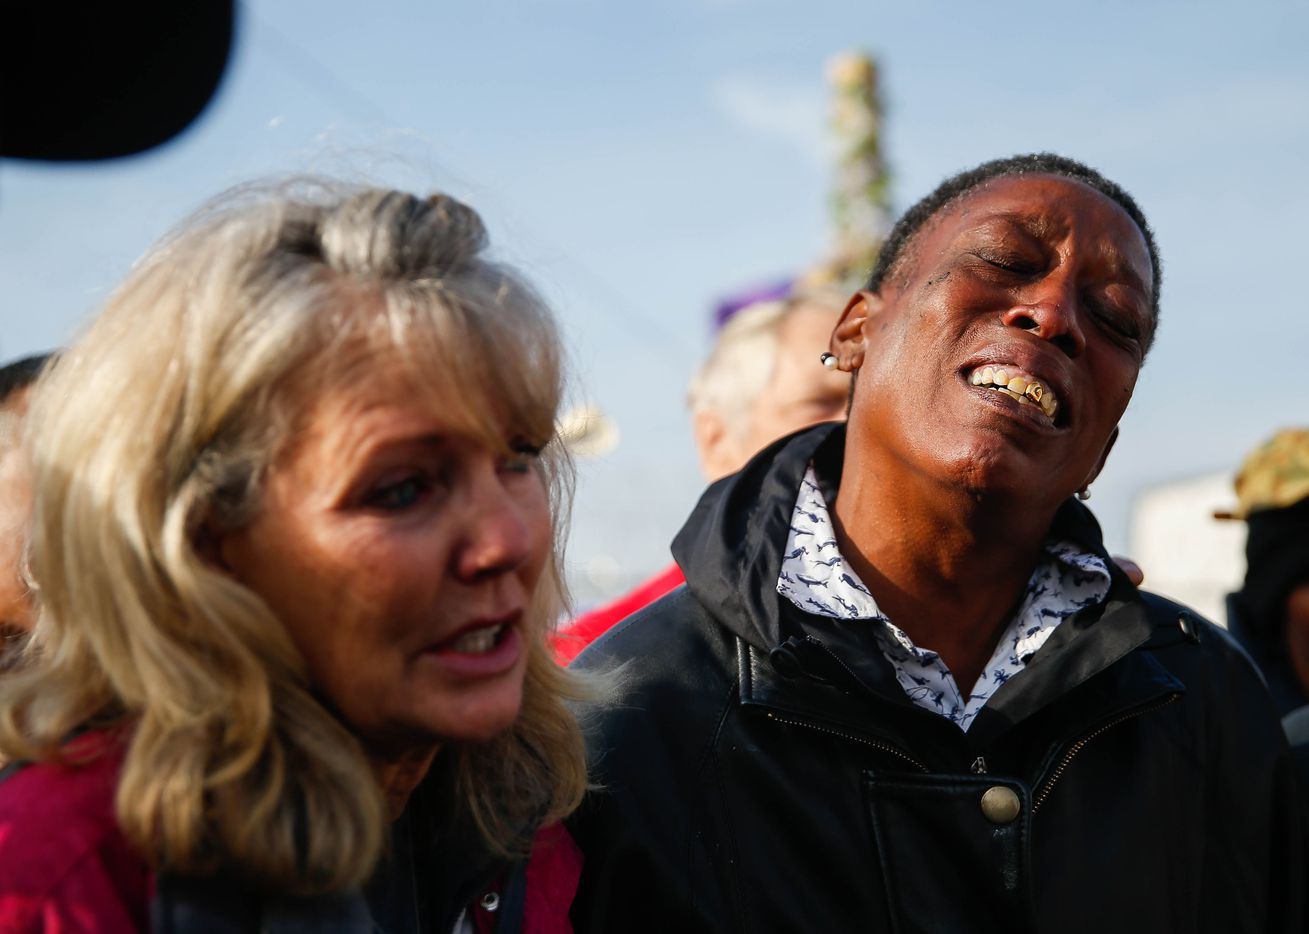 Rhonda Carrington (right) and Jennifer Birdd cried during Pastor Jeffery Parker's speech about S.O.U.L. Church having to move from the downtown Dallas lot on Dec. 8, 2019.